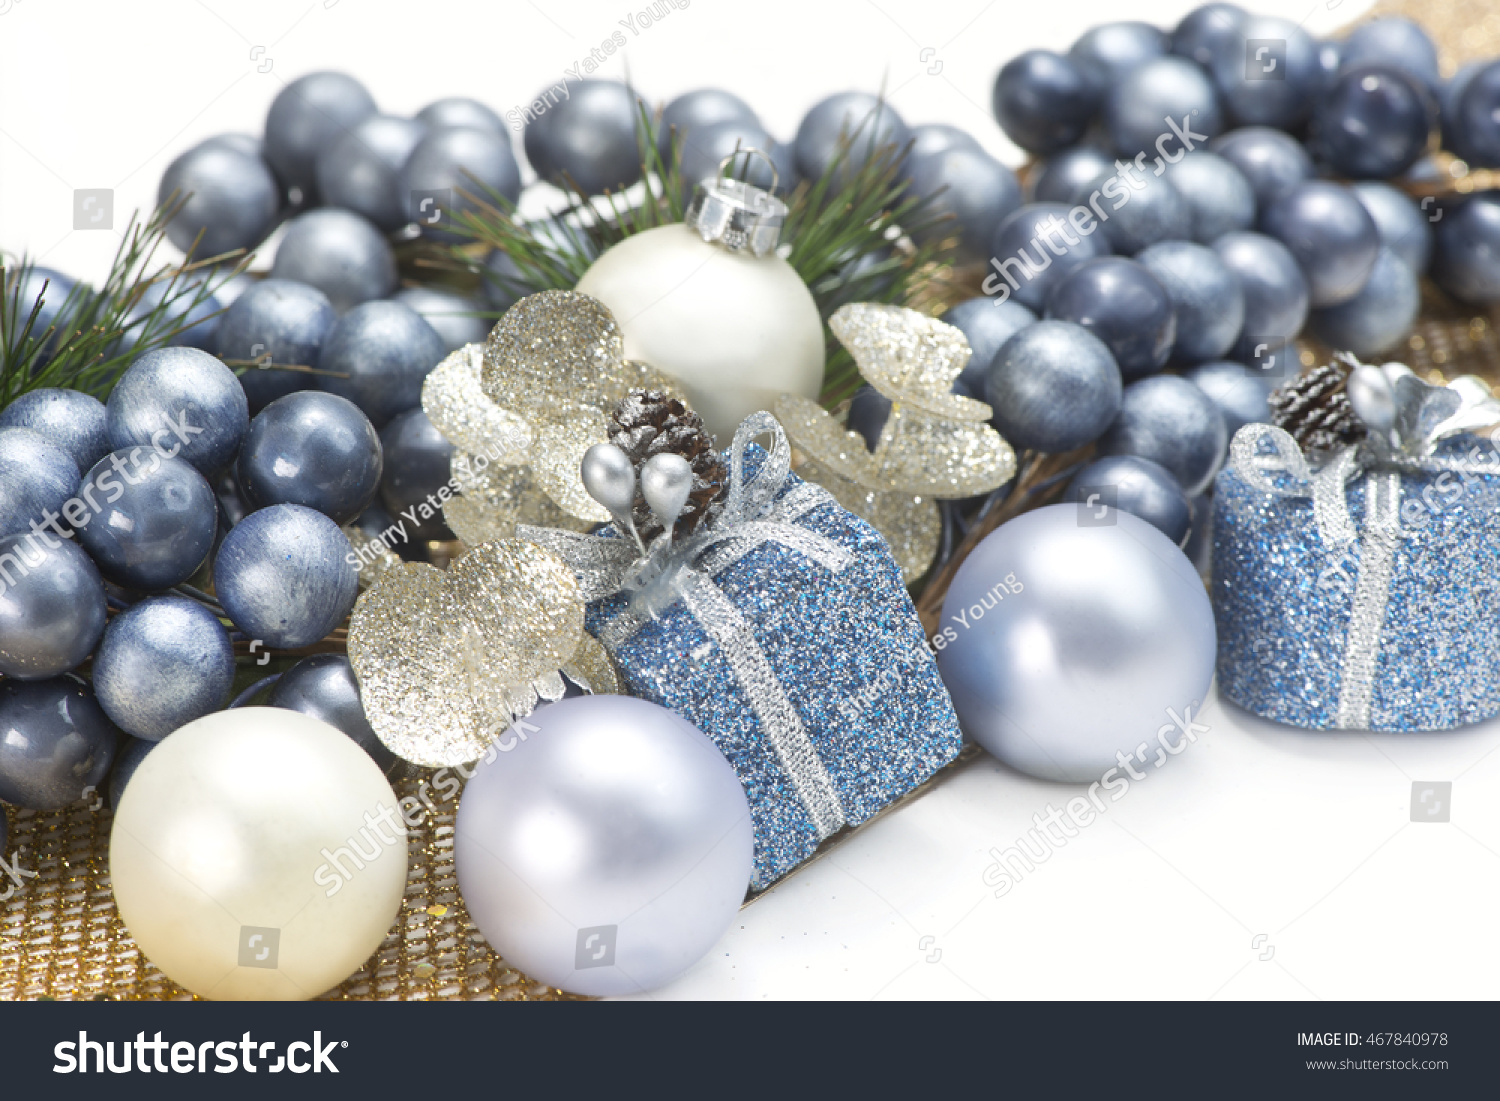 blue gold and silver christmas decorations on white background - Blue And Gold Christmas Decorations